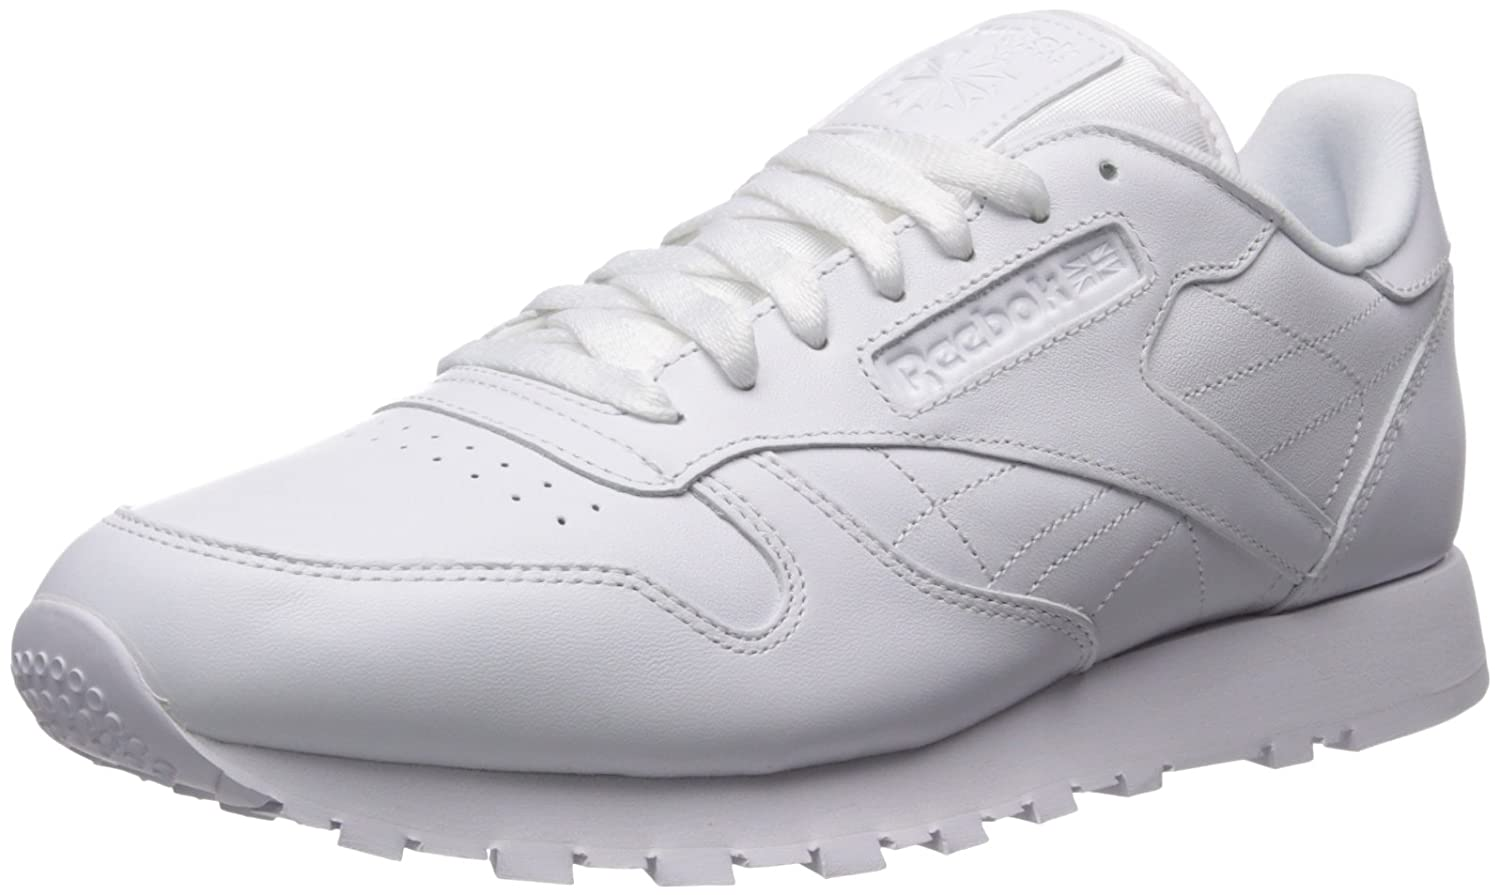 Reebok Men's Classic Leather Sneaker B00X5T87AS 6 M US|White/White/White